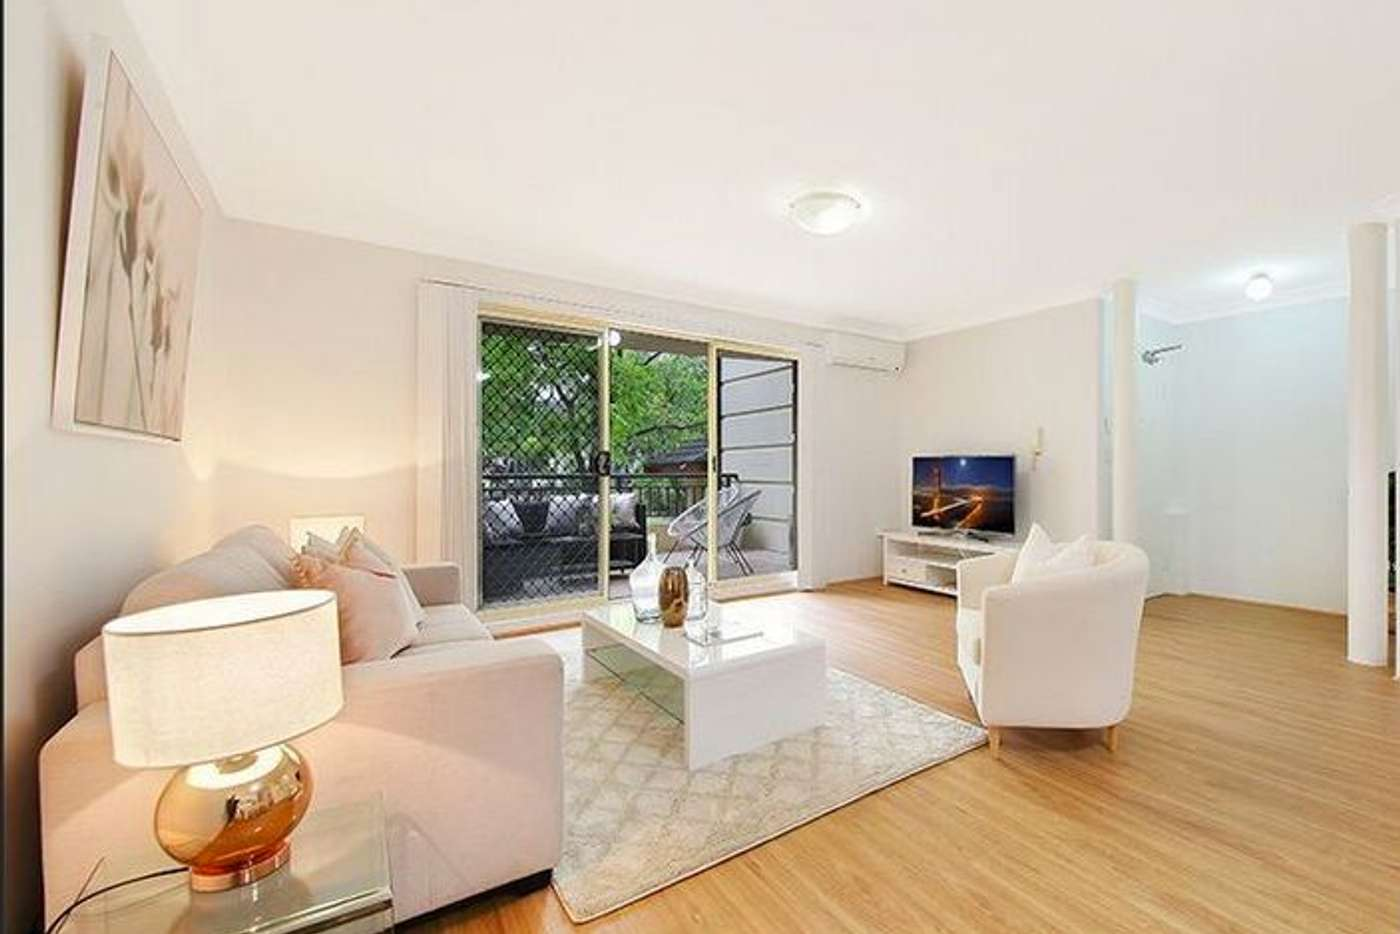 Main view of Homely apartment listing, 65/23 George Street, North Strathfield NSW 2137